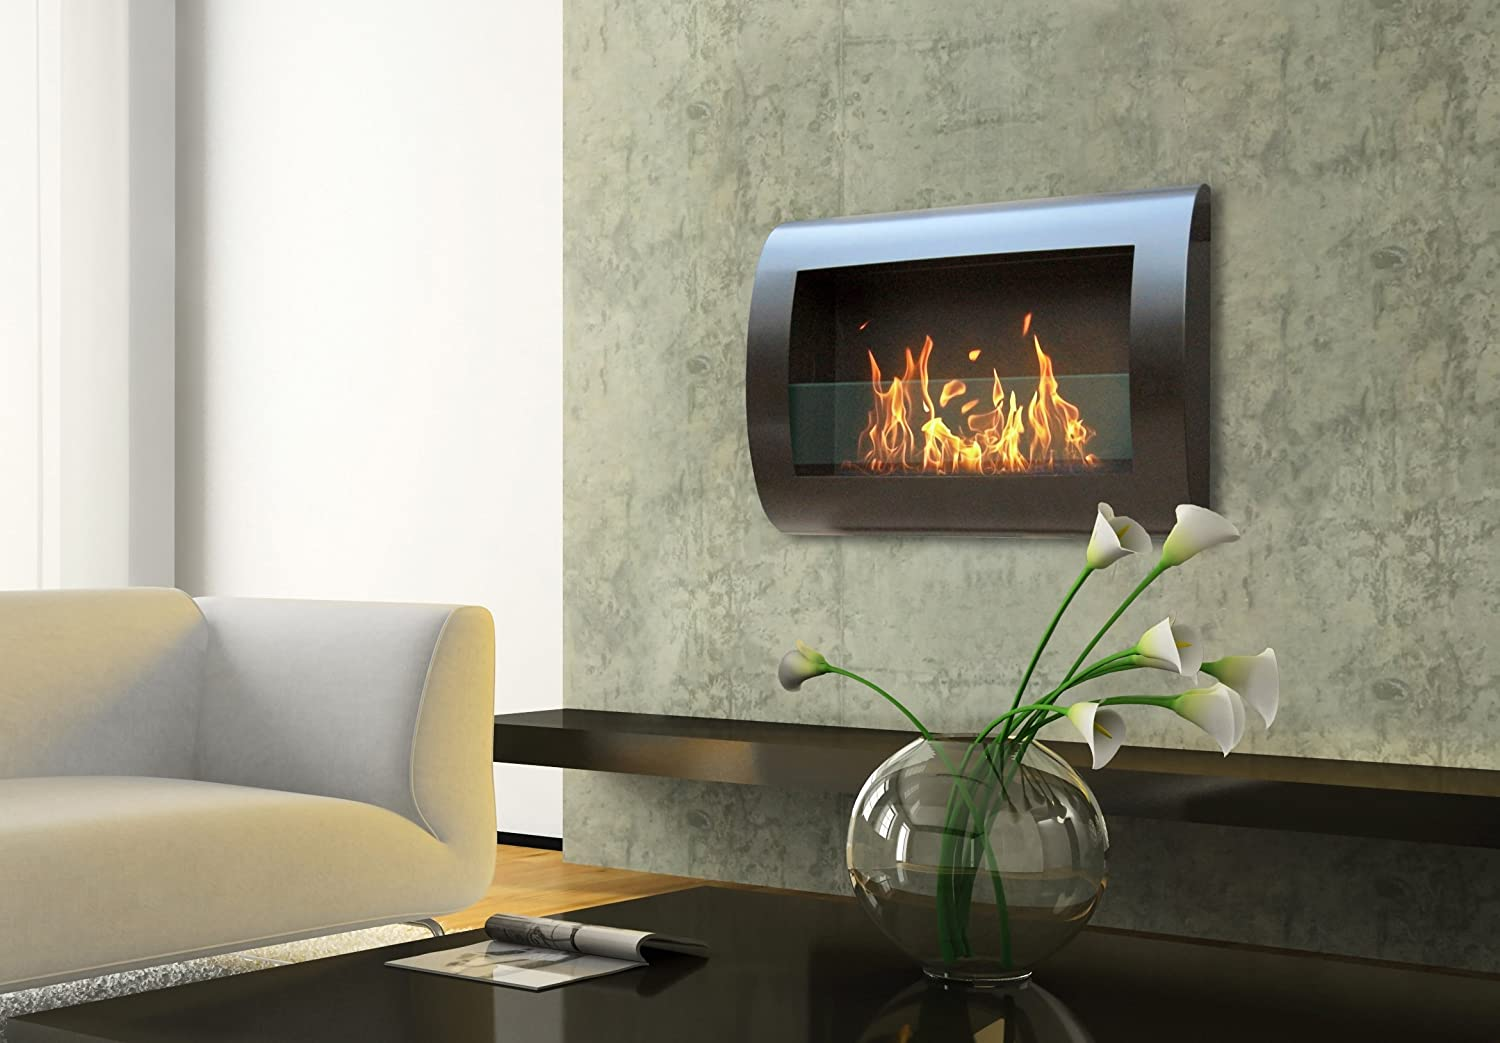 Natural gas wall mount fireplaces - Amazon Com Anywhere Fireplace Chelsea Model In Black Wall Mount Bio Ethanol Fireplace Home Kitchen